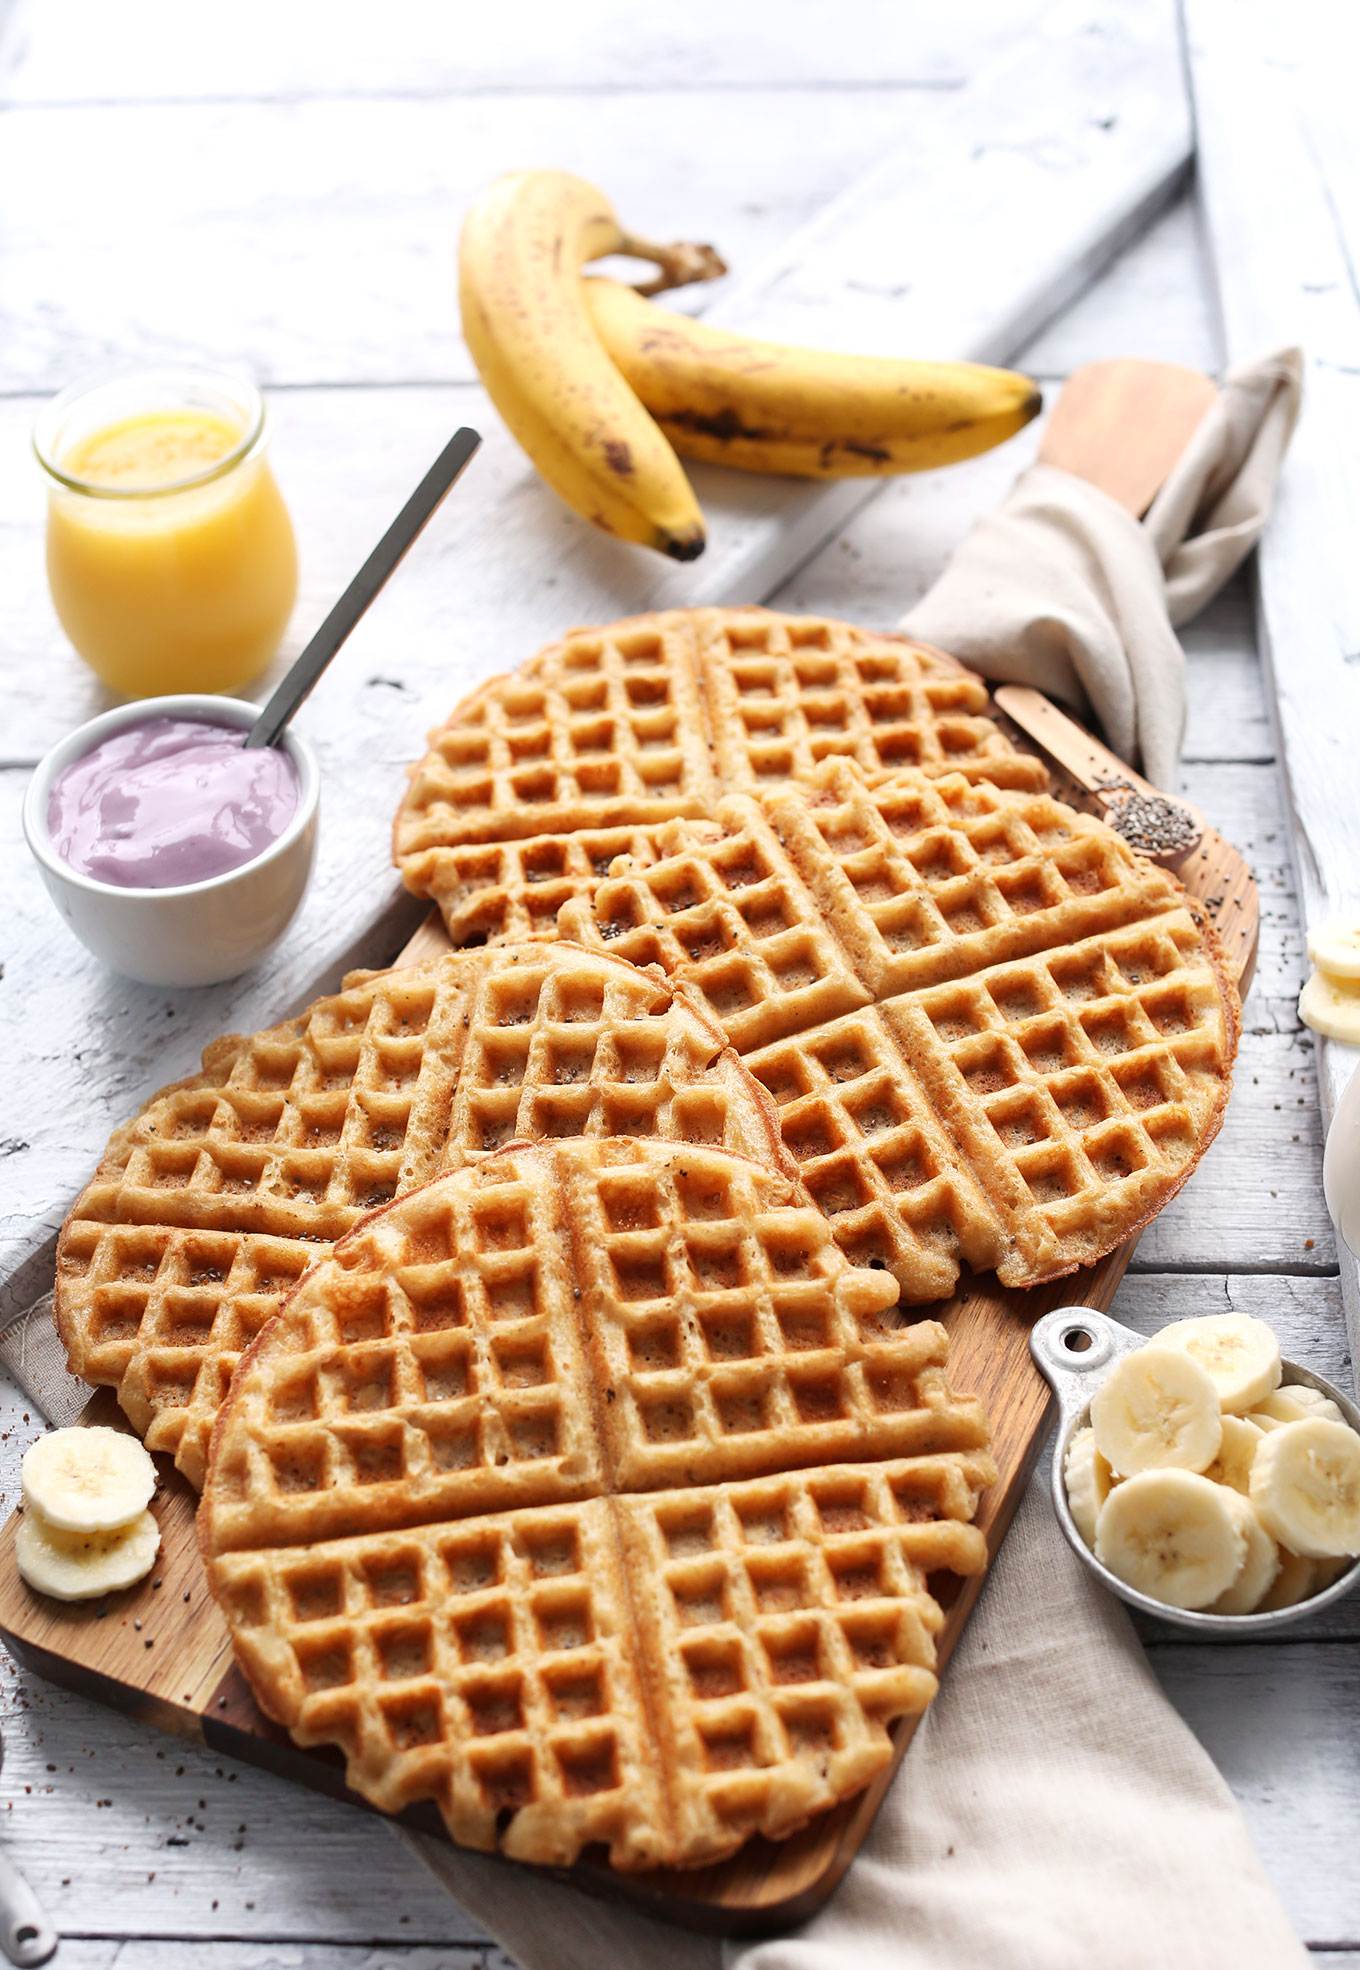 Homemade Yogurt Waffles alongside fresh bananas, yogurt, and orange juice